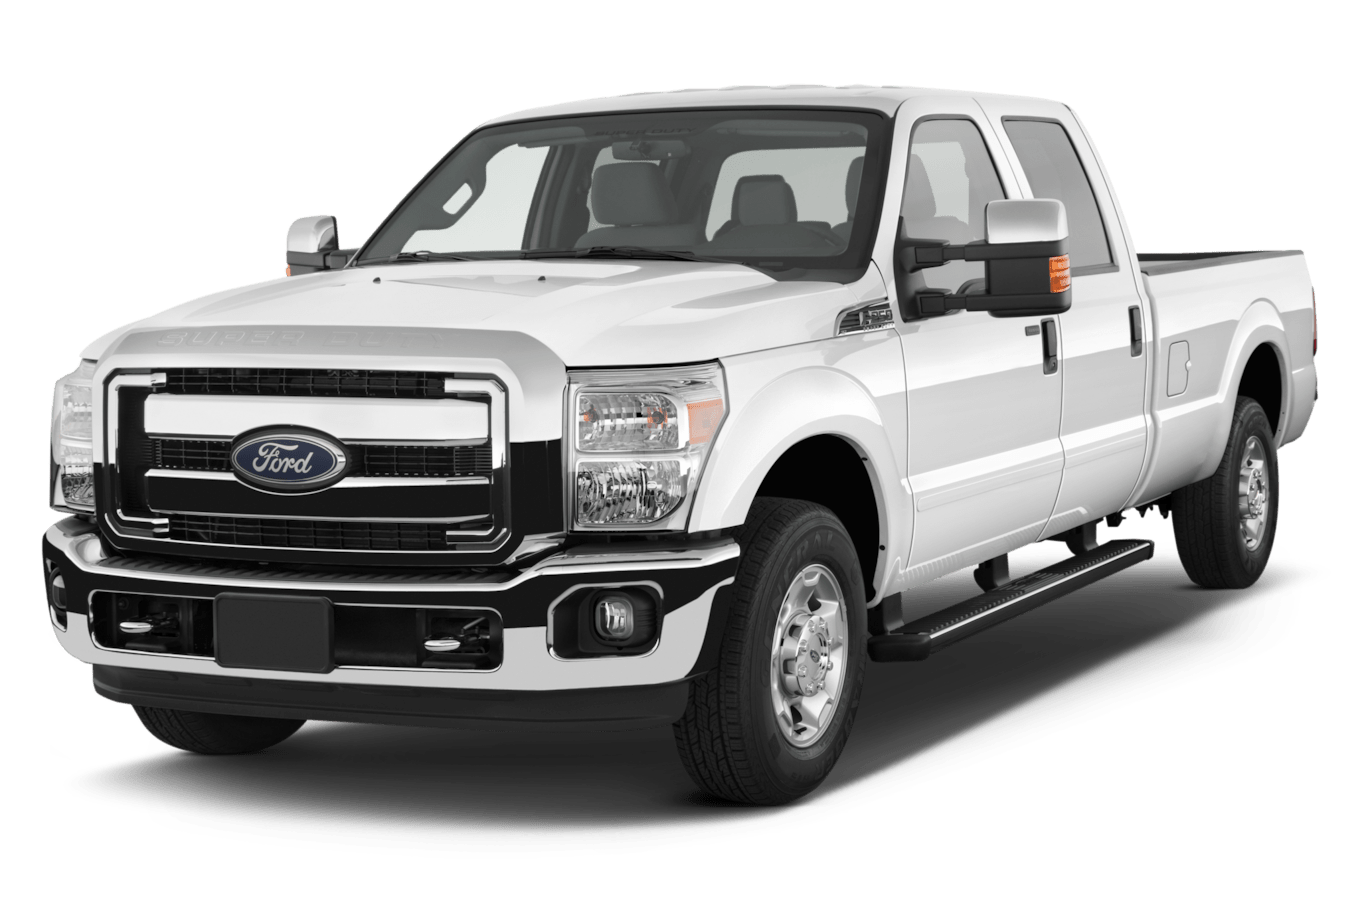 hight resolution of 2012 ford f 250 reviews research f 250 prices specs 2012 ford f250 4x4 transmission wiring harness